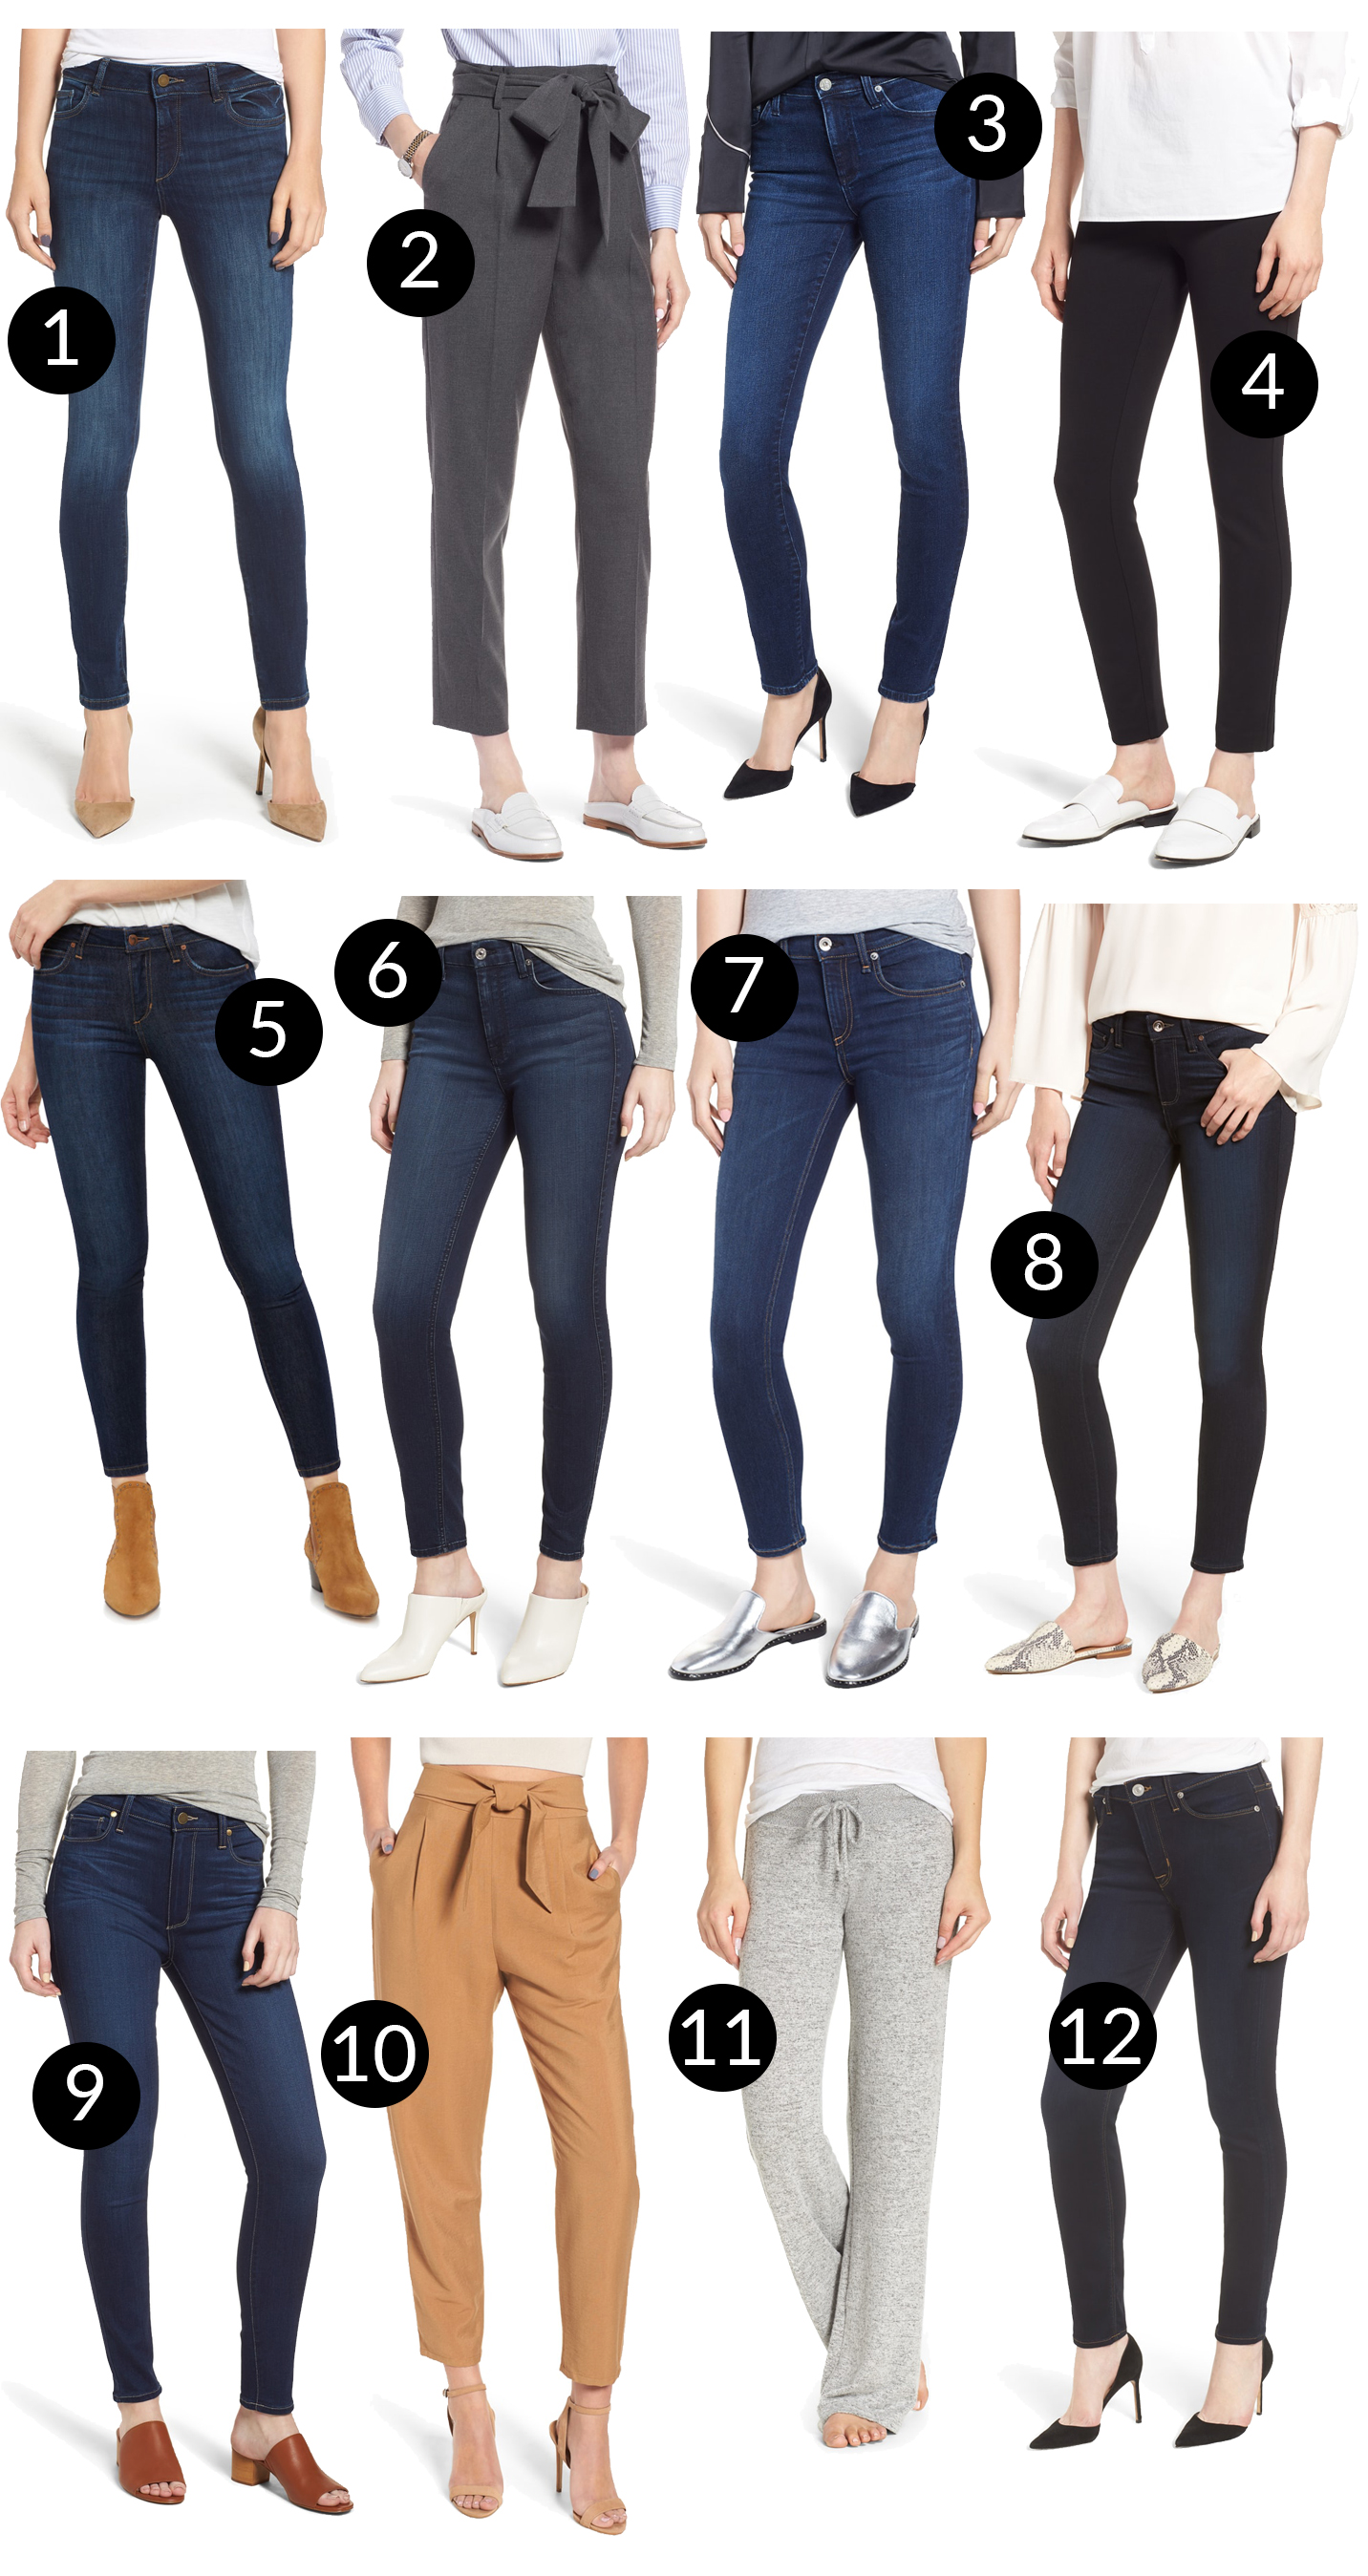 LIVE: Nordstrom Anniversary Sale pants